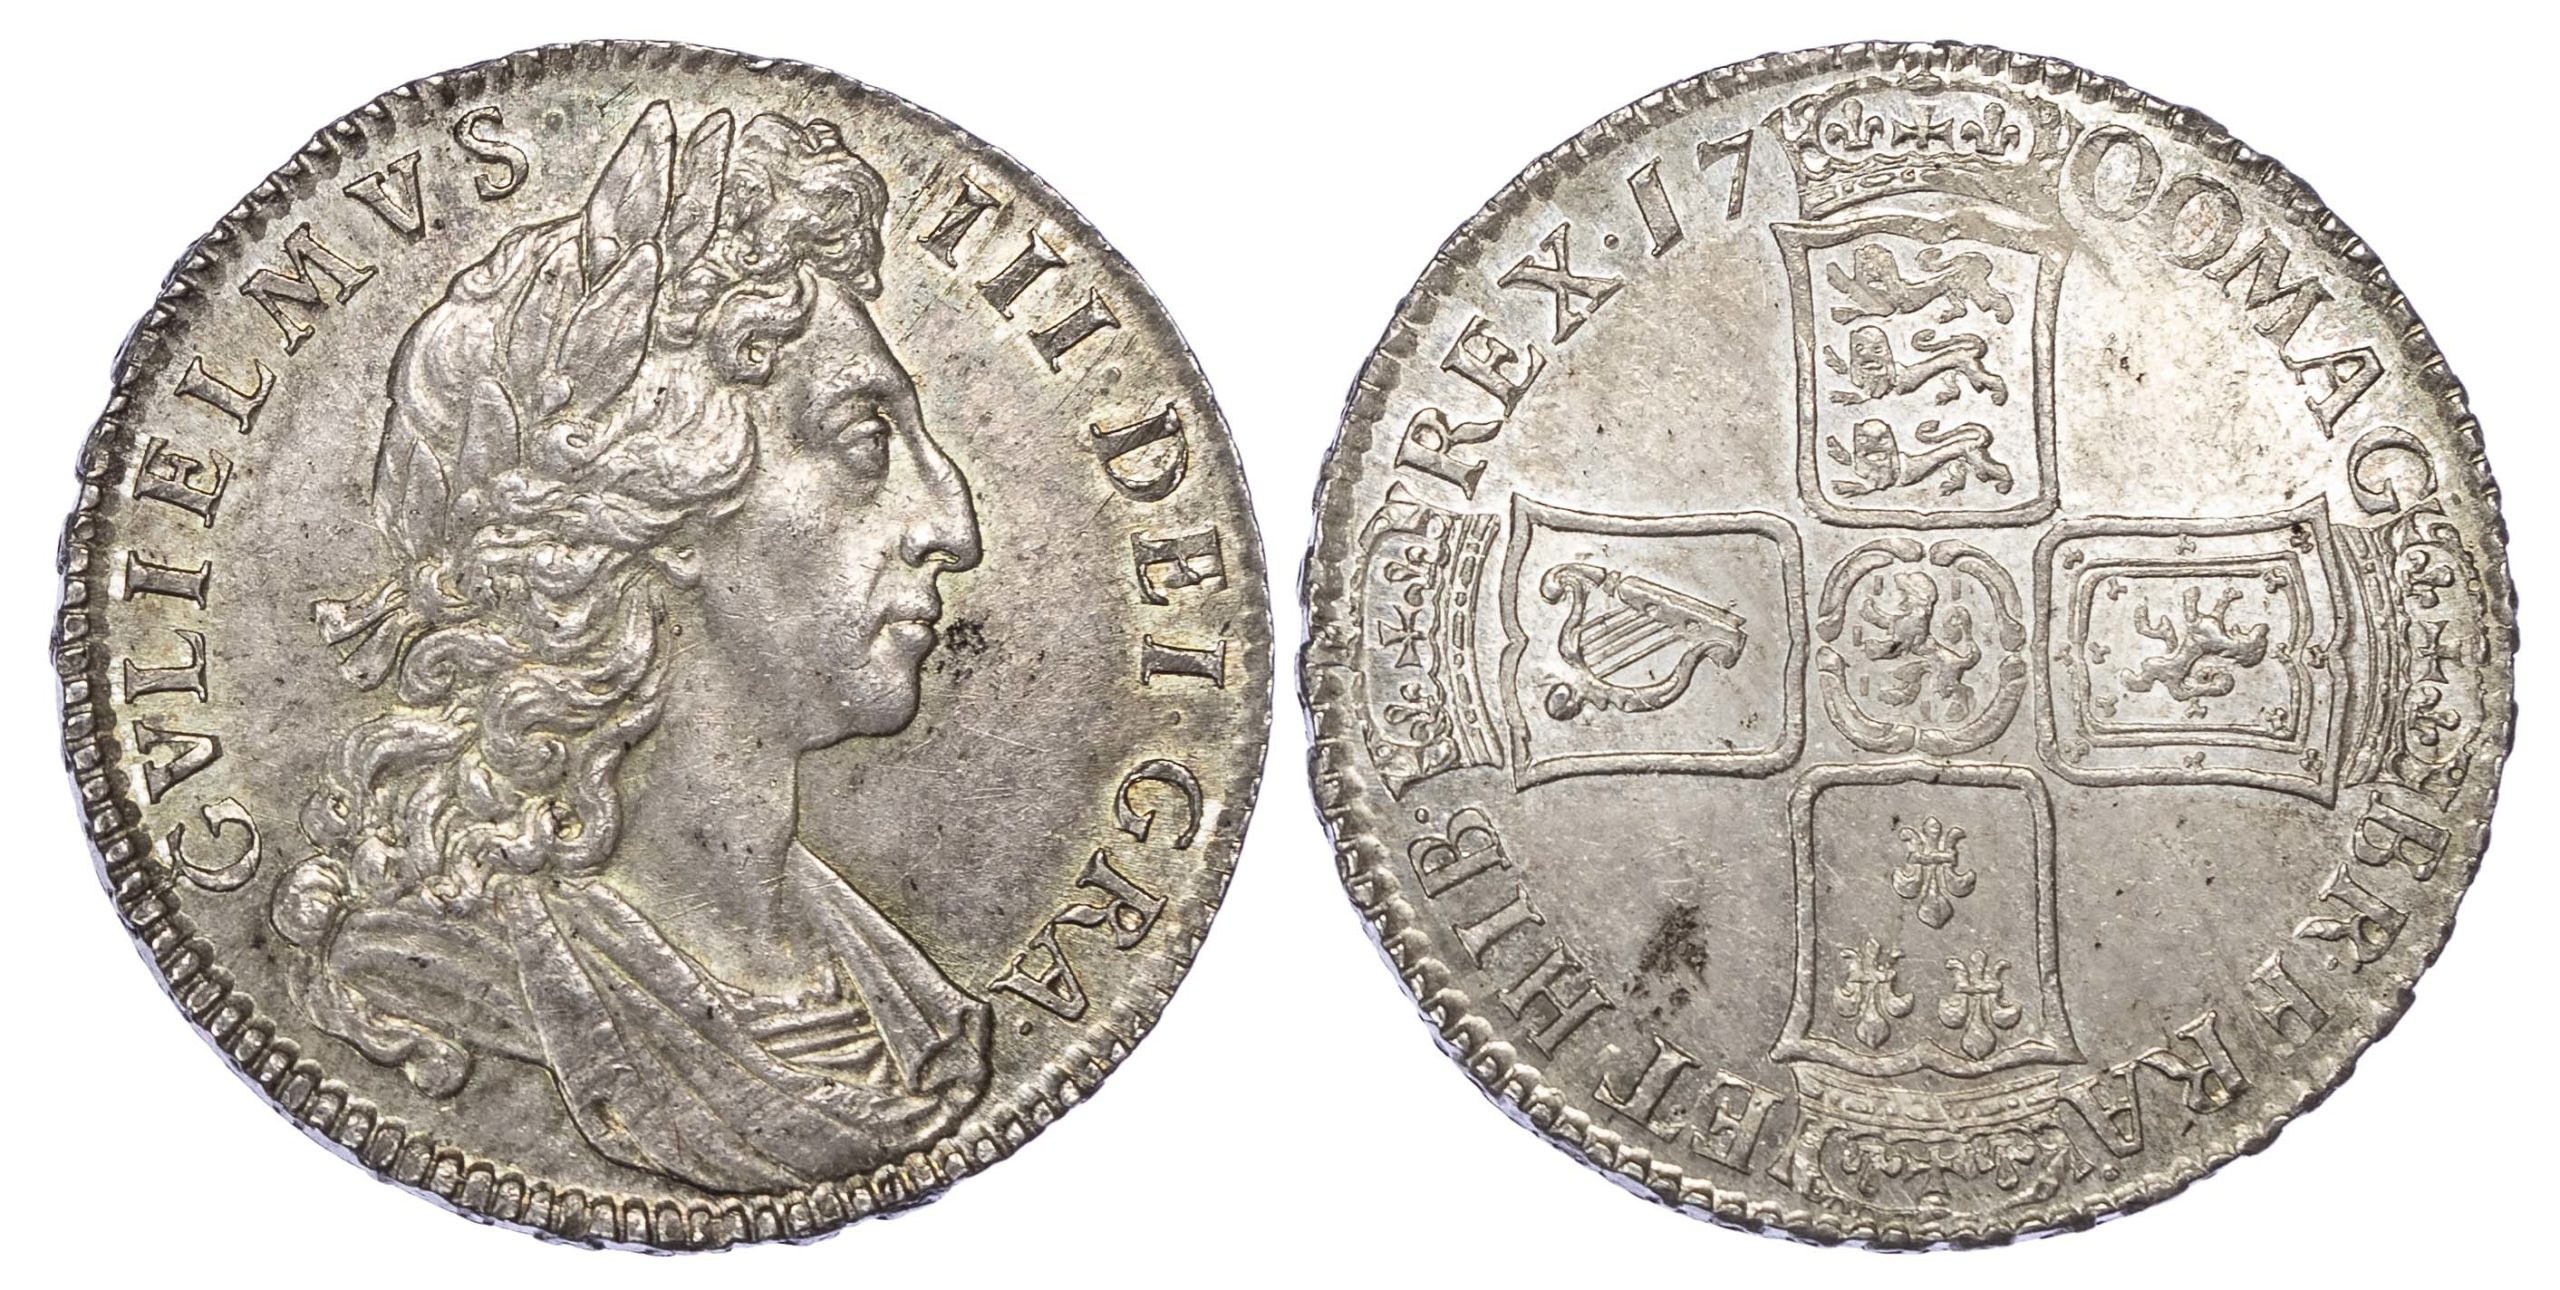 William III (1694-1702), Halfcrown, 1700, Dvodecimo